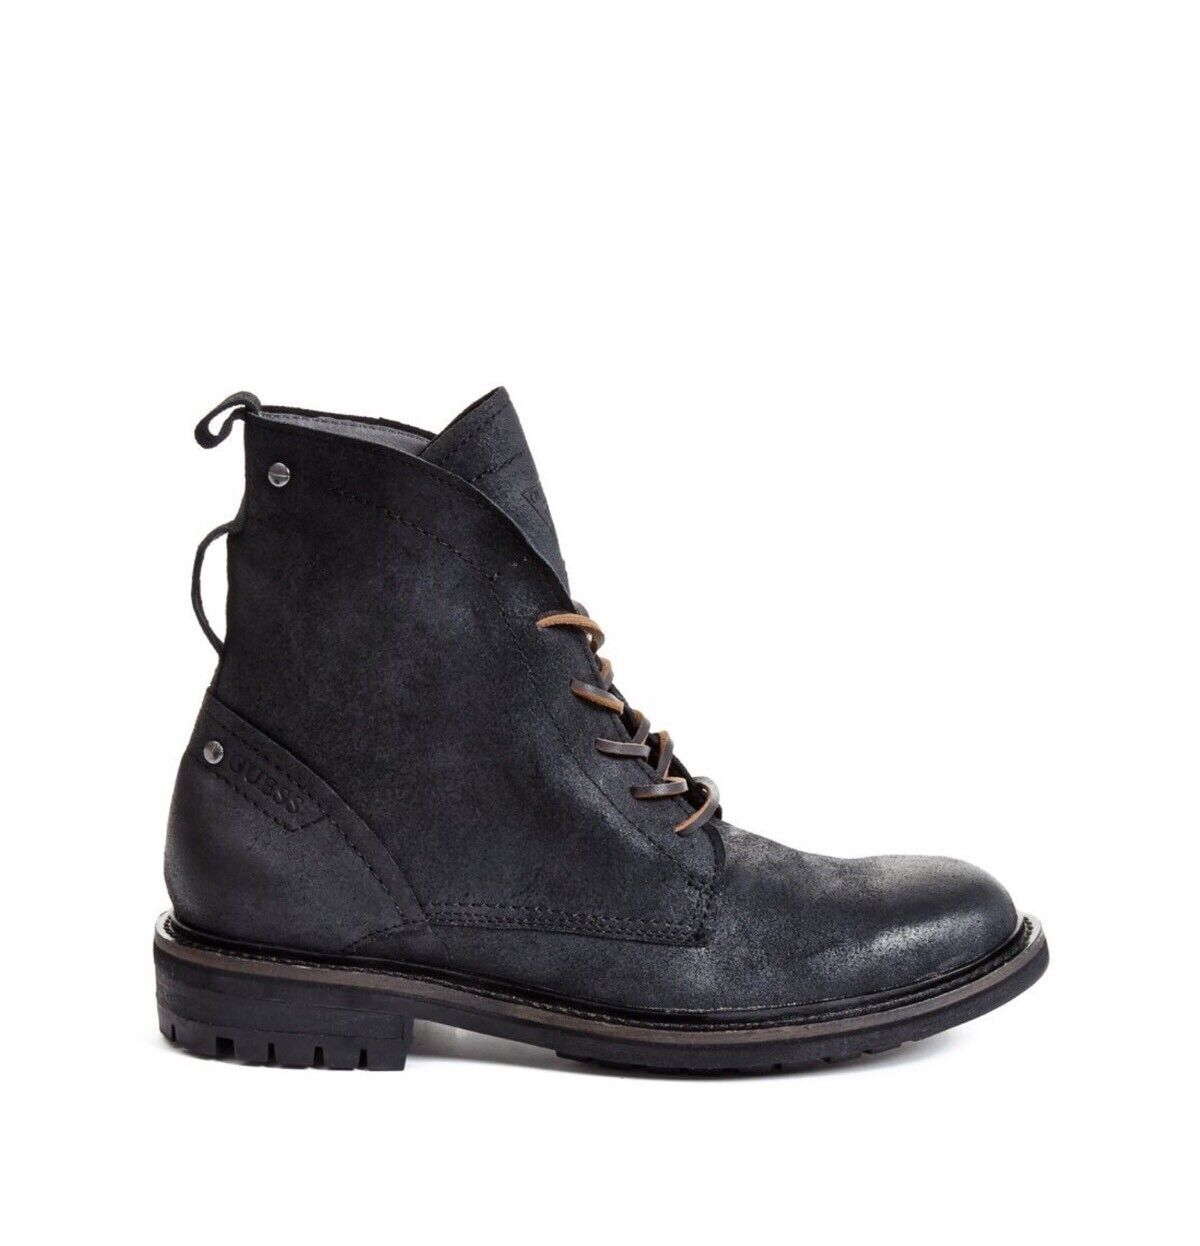 Guess Men's Remmy Boots In Black Leather Stacked Heel Lace Up Size 7.5